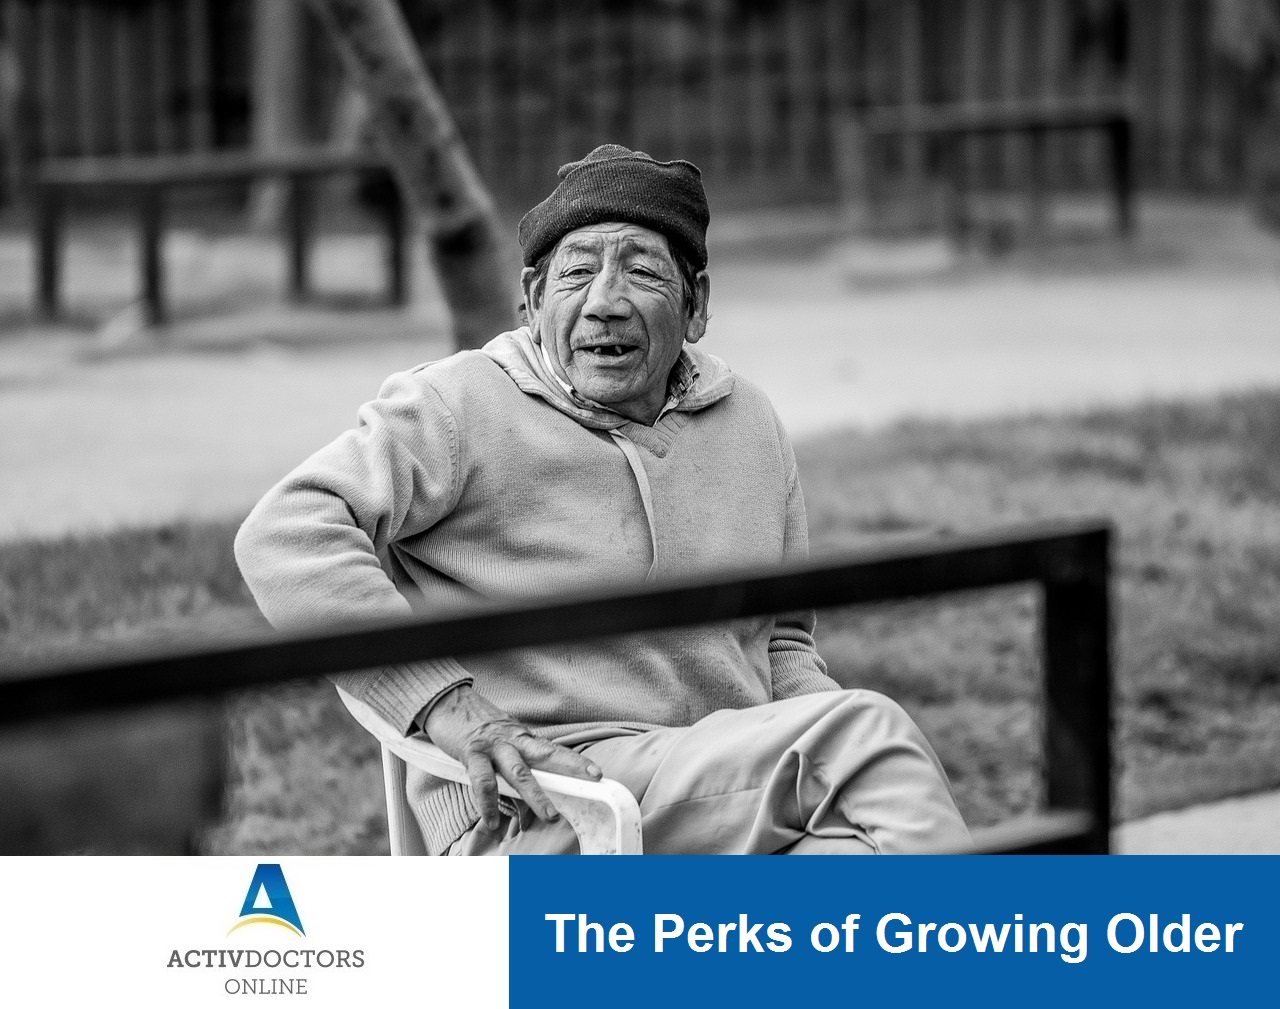 The Perks of Growing Older